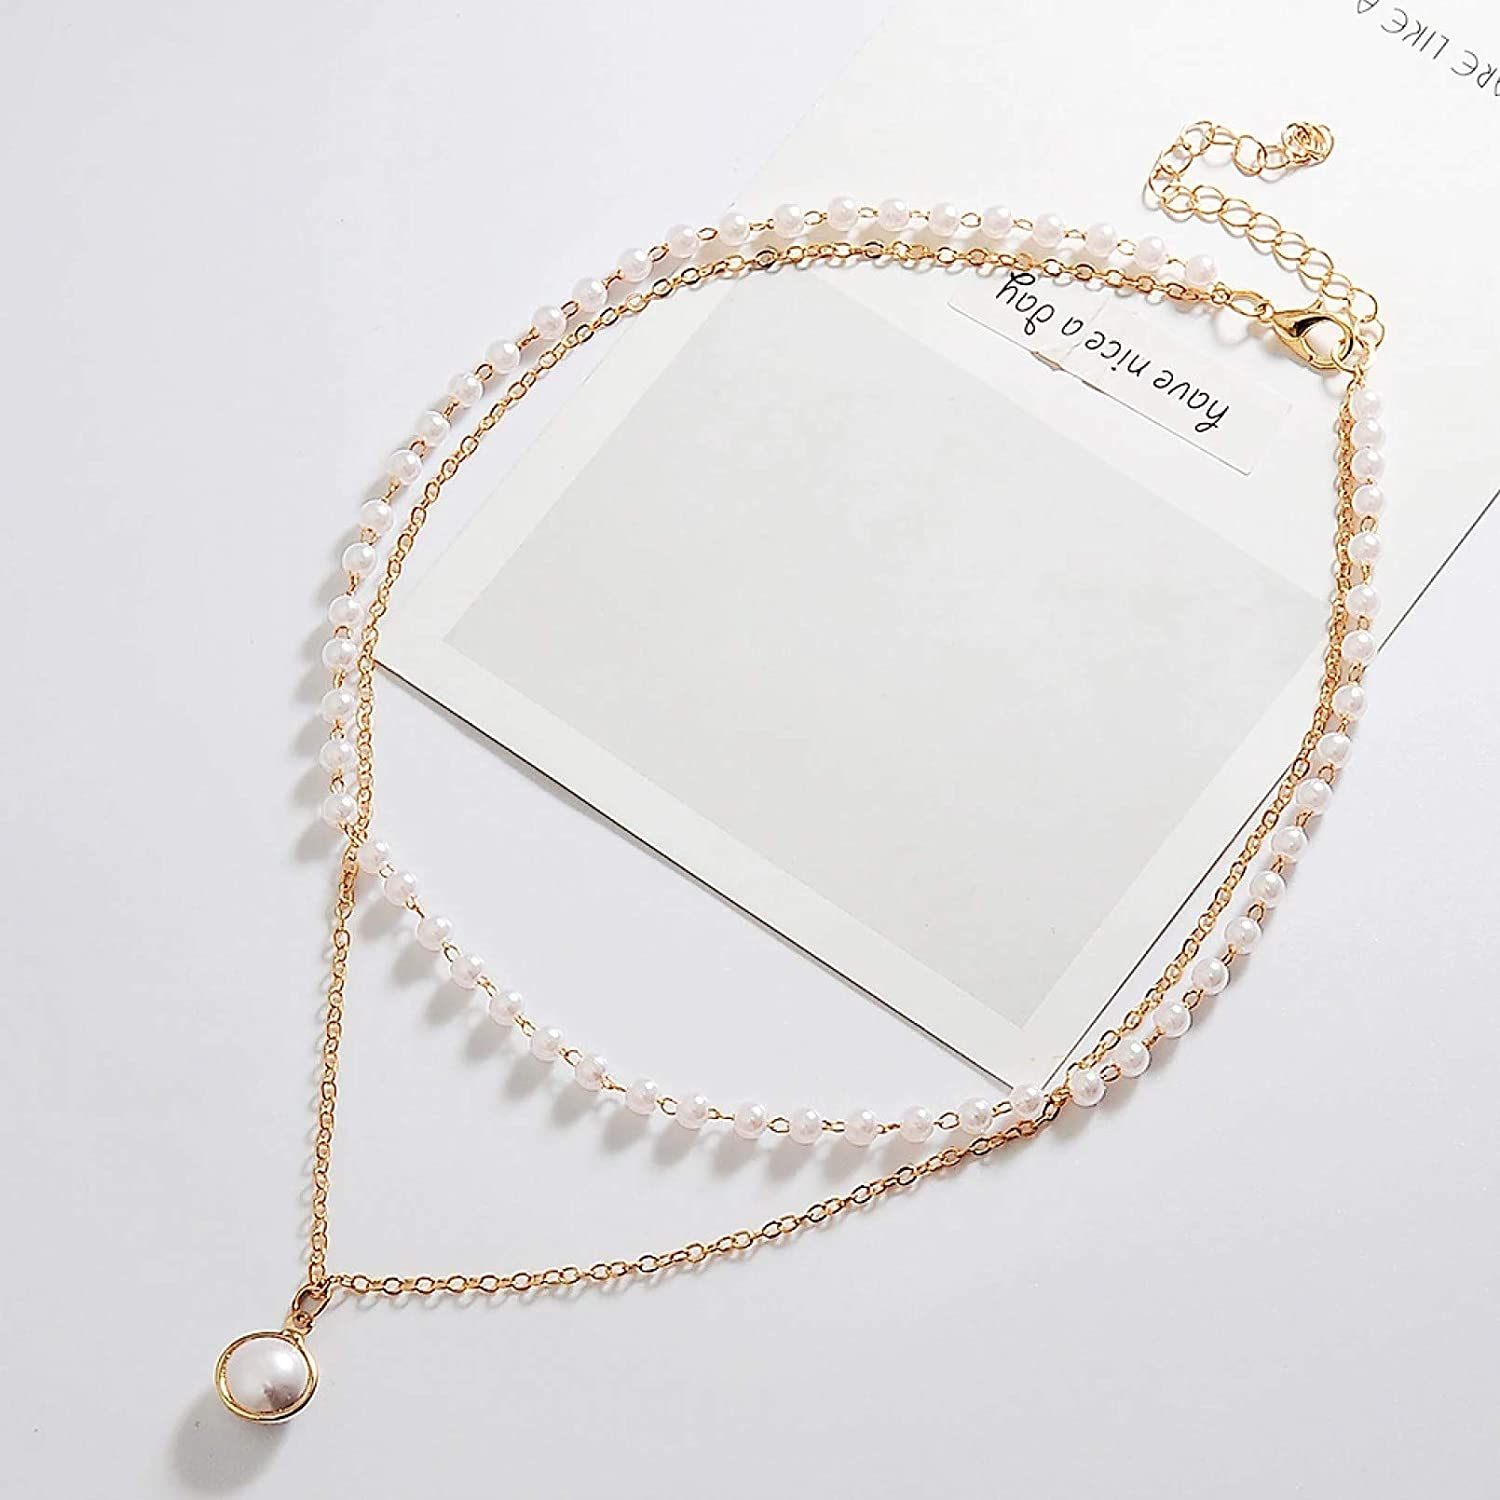 N/A Necklace Pendant Double Layer Chain Fashion Choker Cute Romantic Women Necklace Gold Color Short Chain Pendant Collar Necklace Jewelry Halloween Christmas Birthday Party Gift